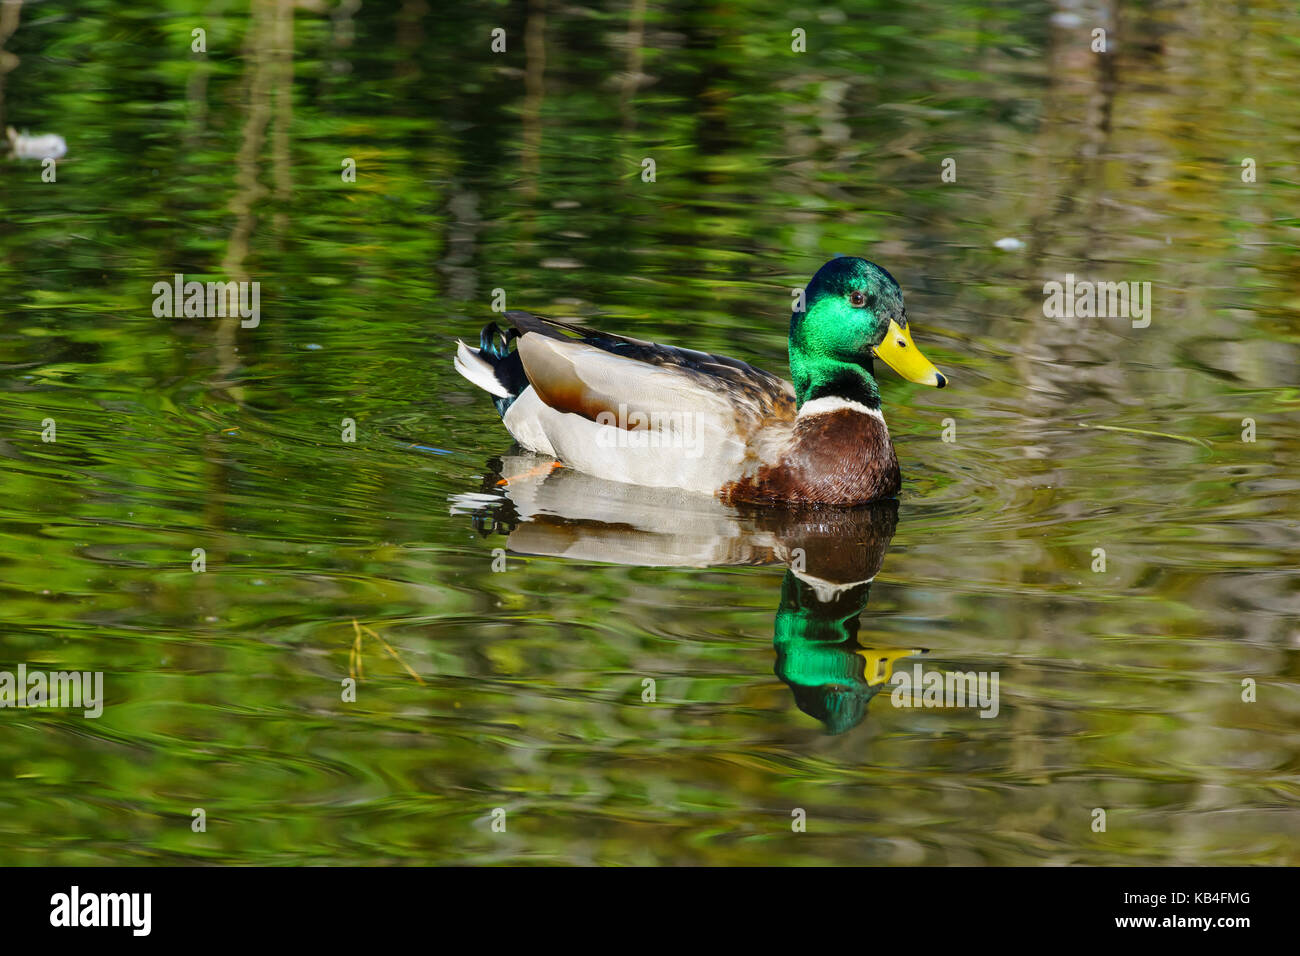 Mallard Duck swimming in a pond with beautiful reflection Stock Photo